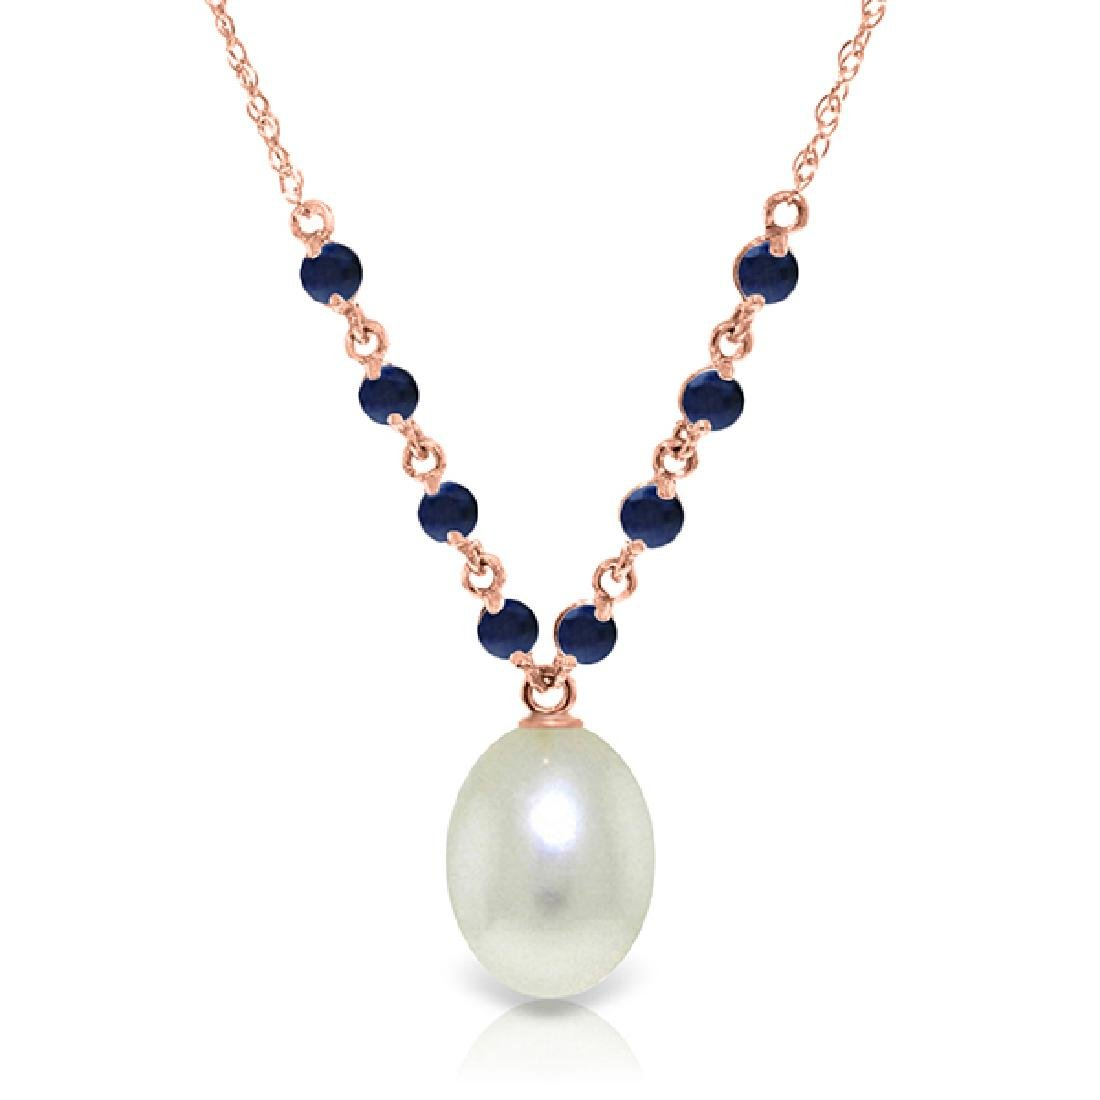 Genuine 5 ctw Pearl & Sapphire Necklace Jewelry 14KT